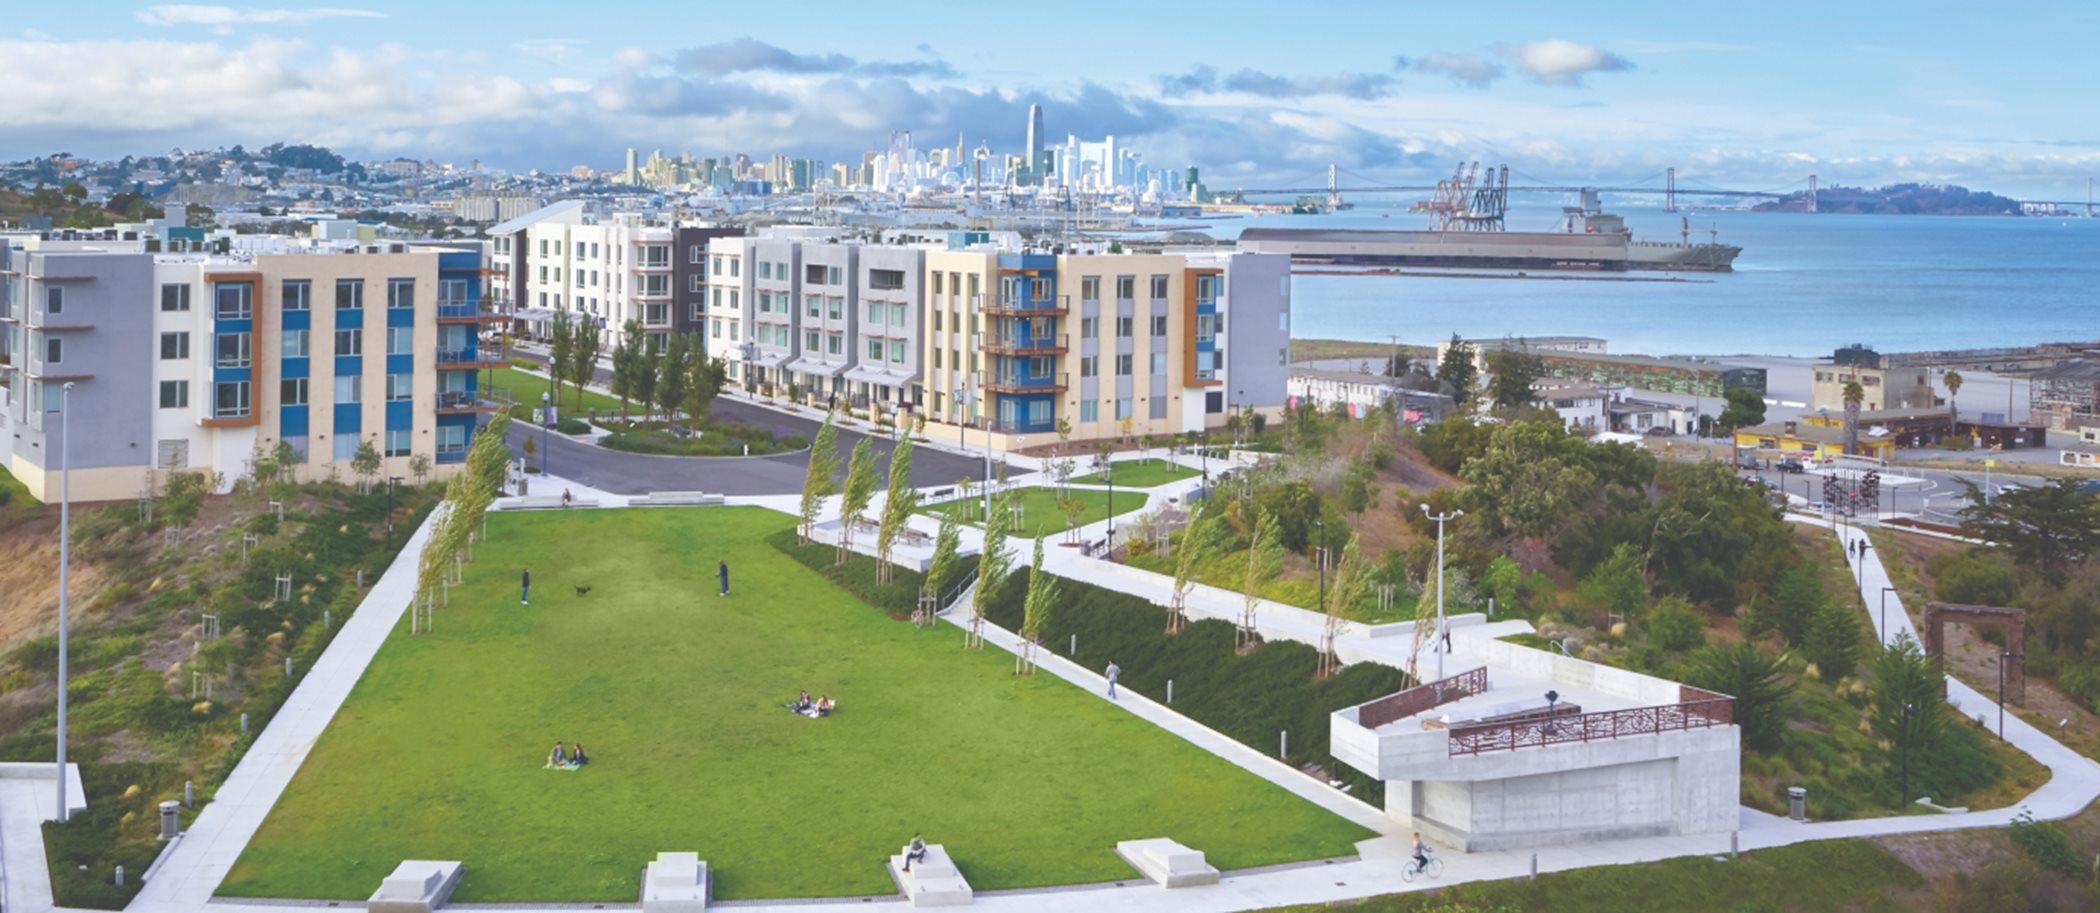 A view of the Shipyard community